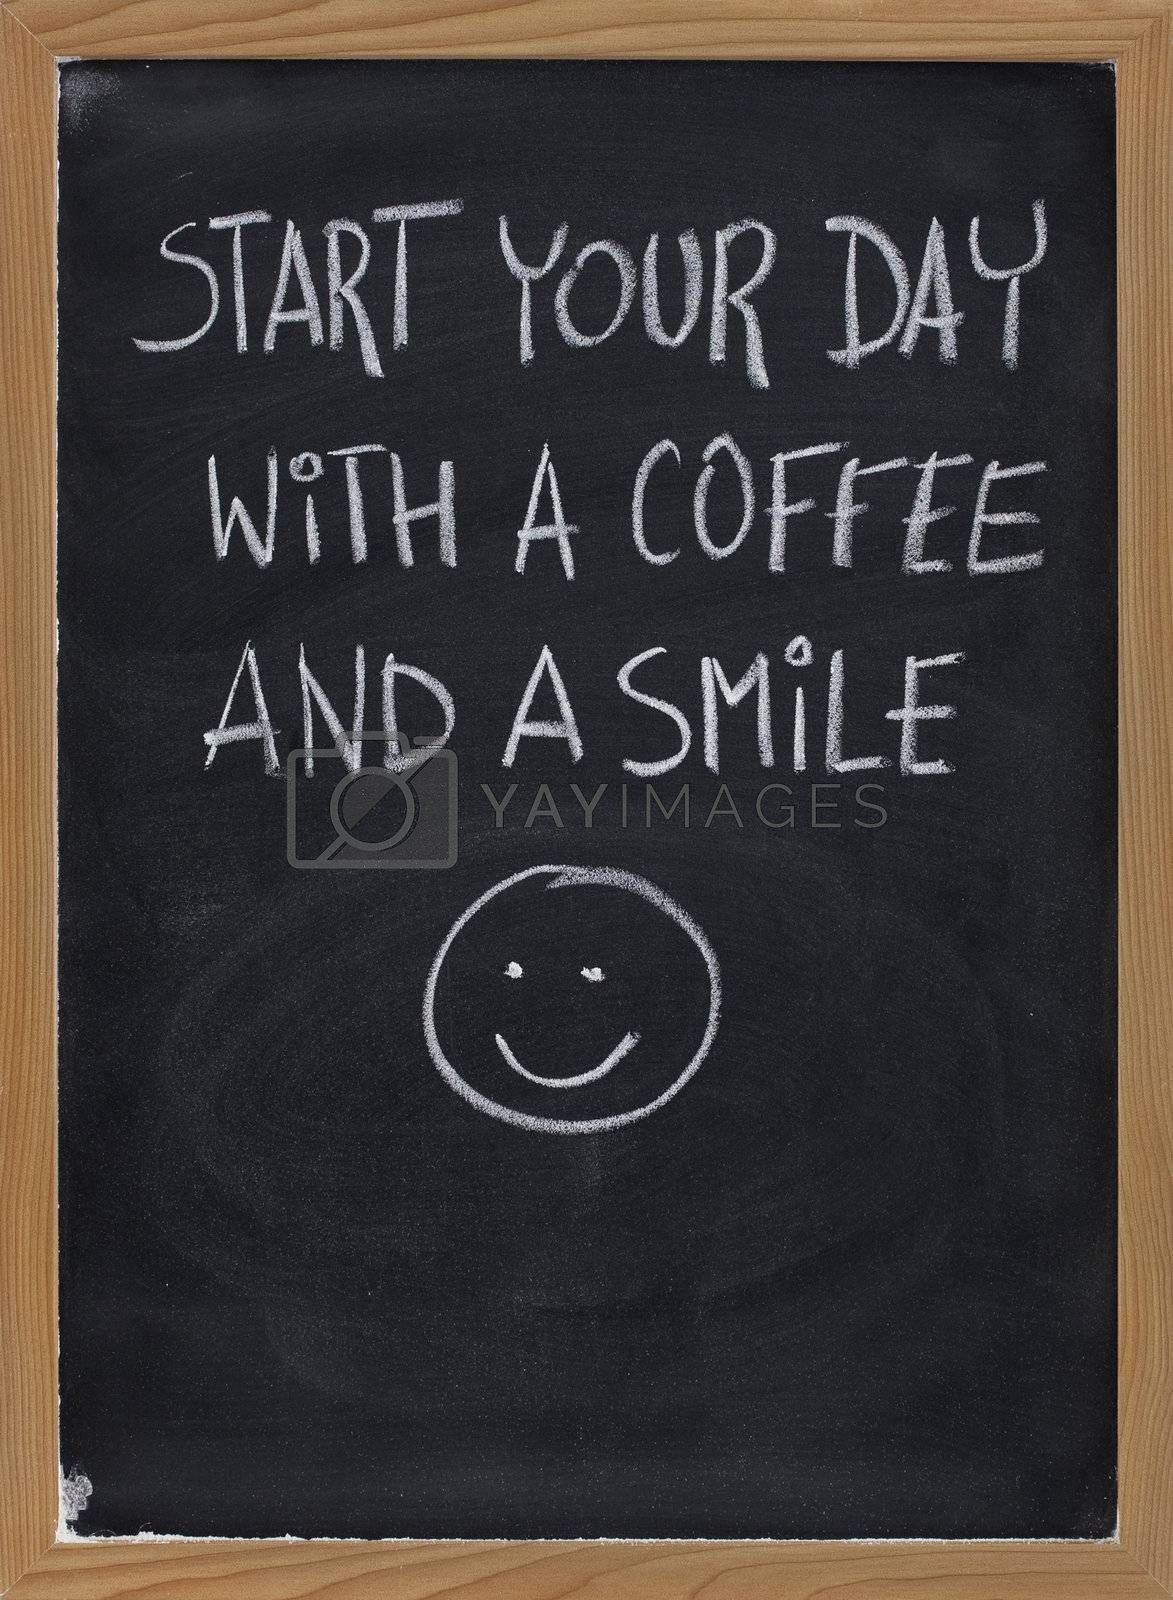 Royalty free image of start your day with coffee and smile by PixelsAway